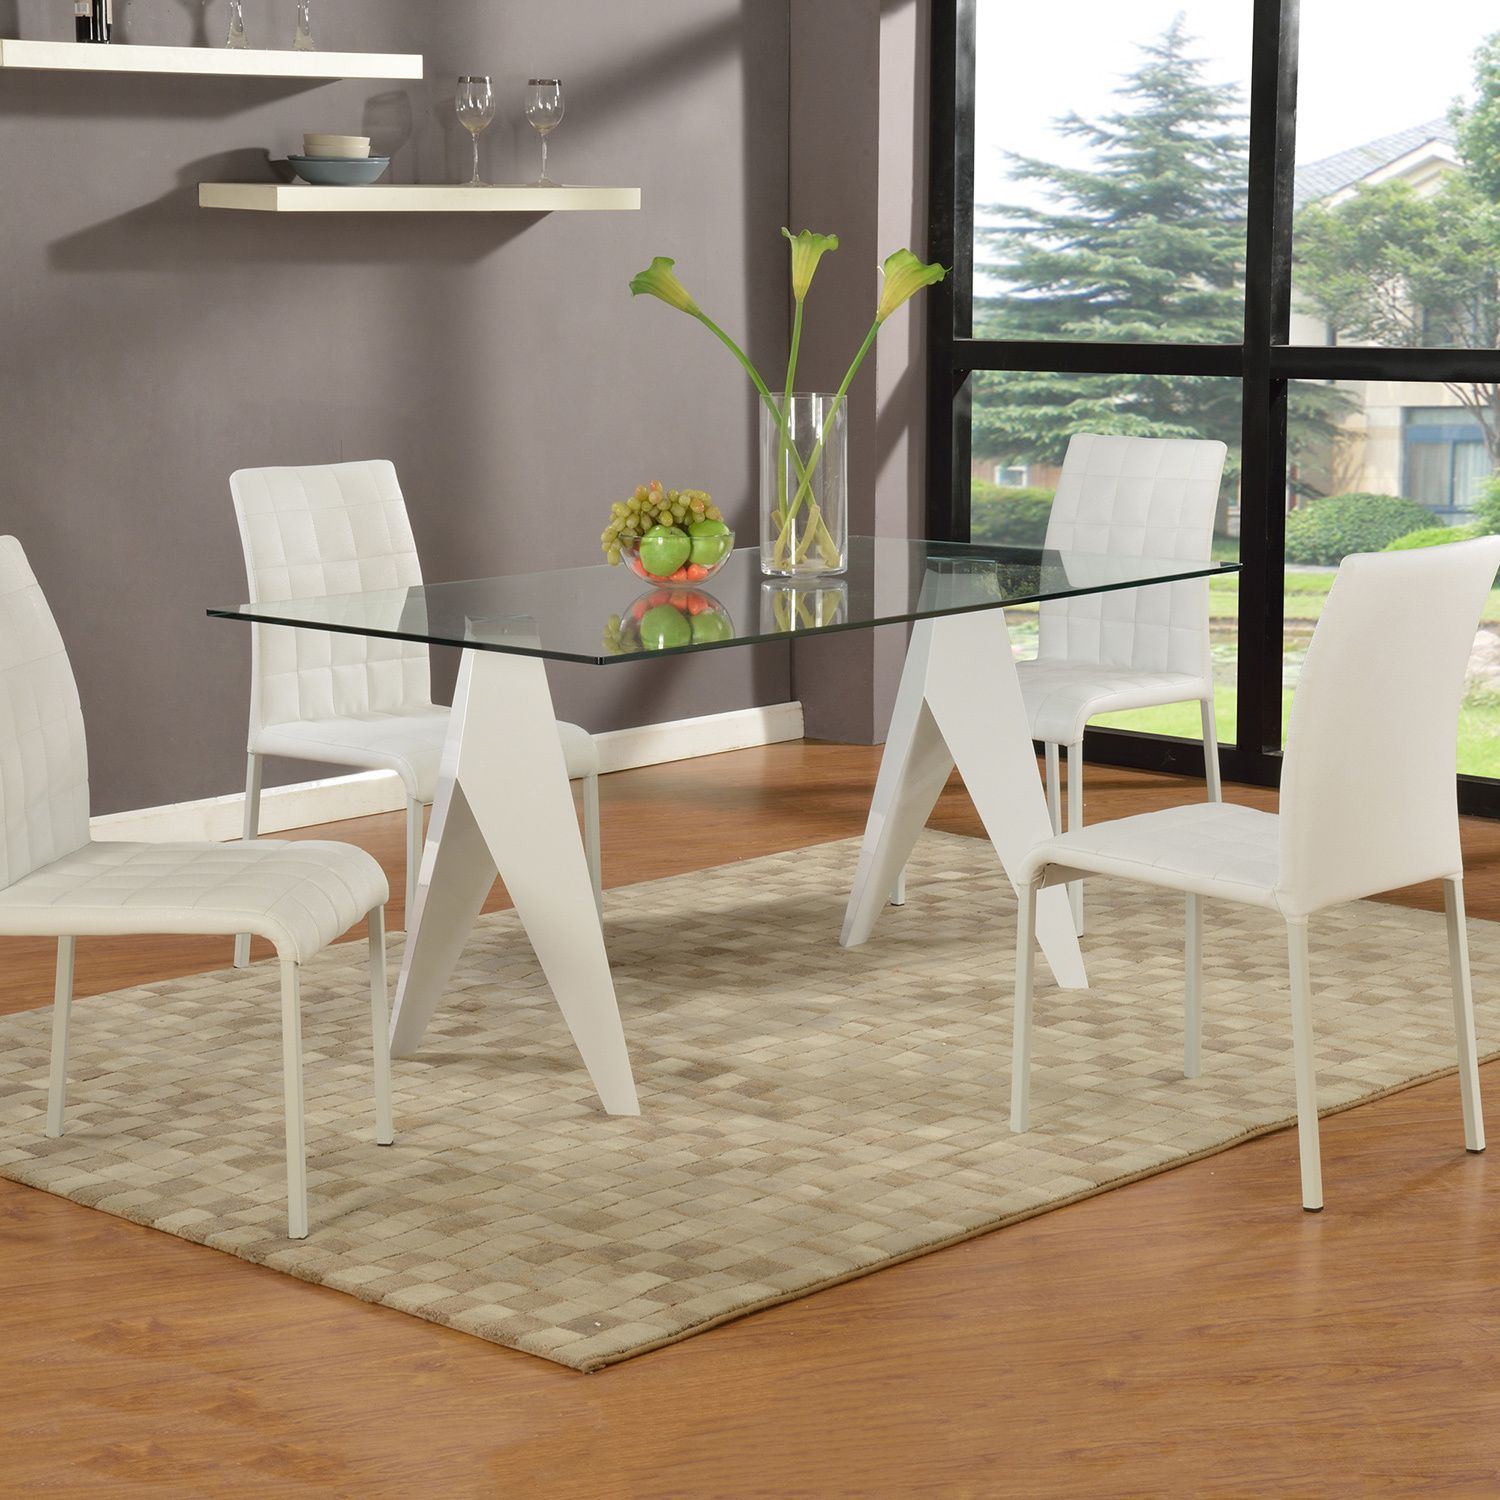 Somette ursula gloss white inch glass dining table ursula gloss